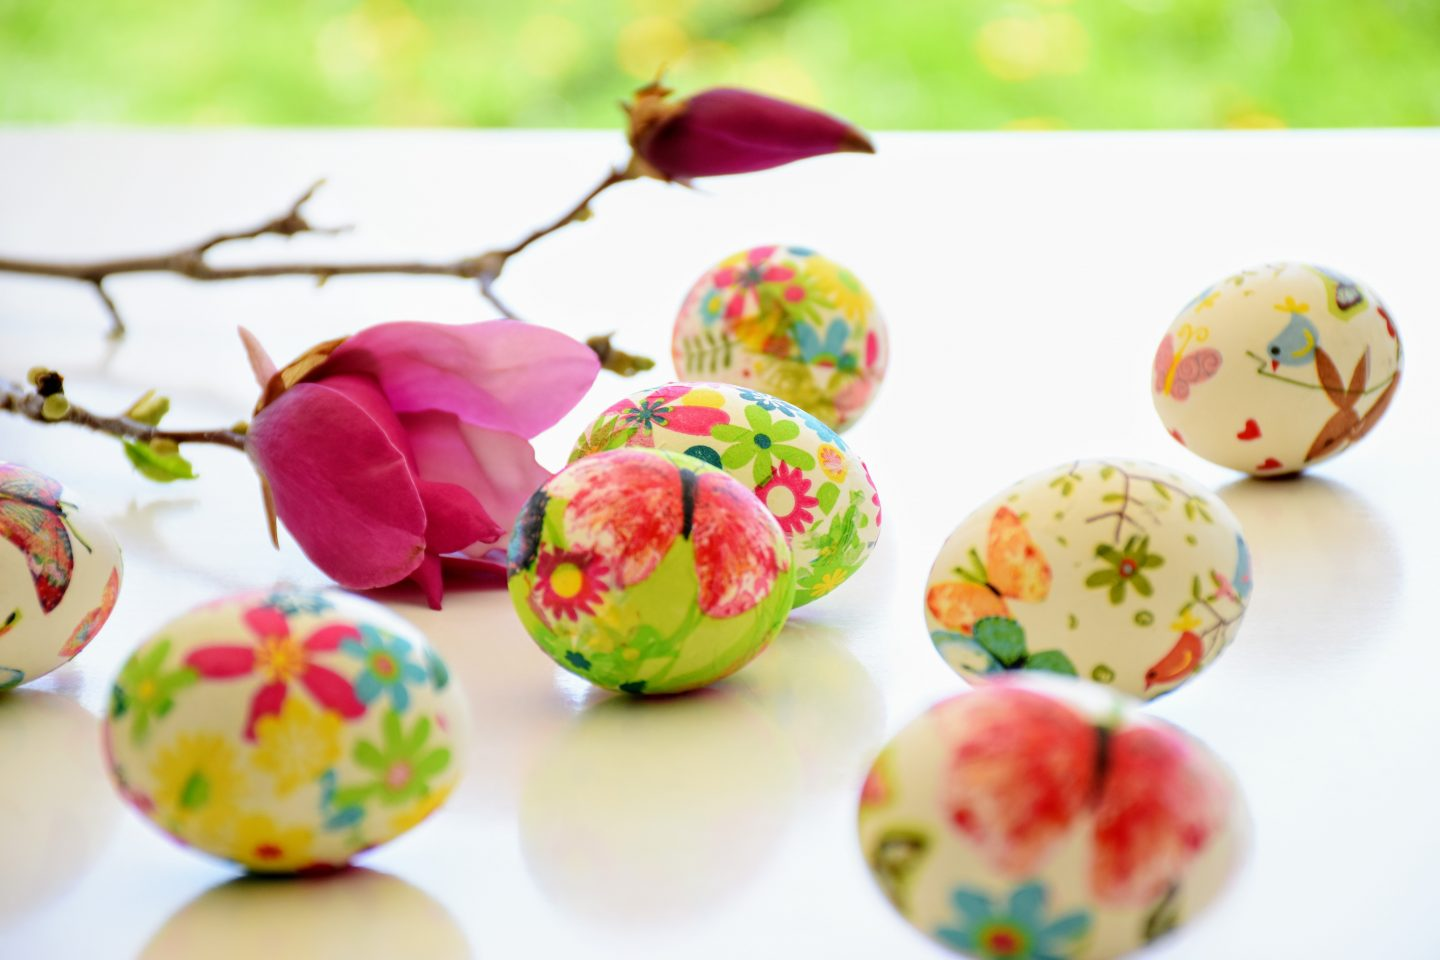 How to enjoy Easter at home – 6 fun ideas from Easter Egg Hunts, recipes and more!